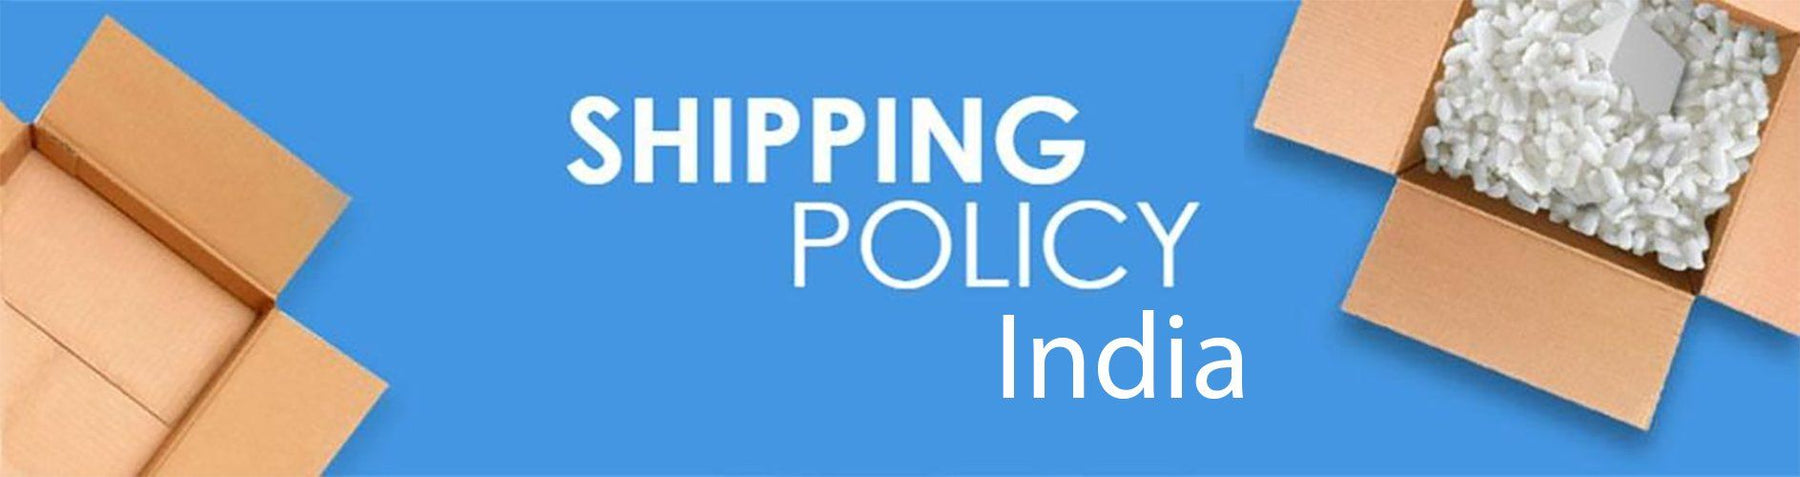 Shipping Policy For Indian Shipments